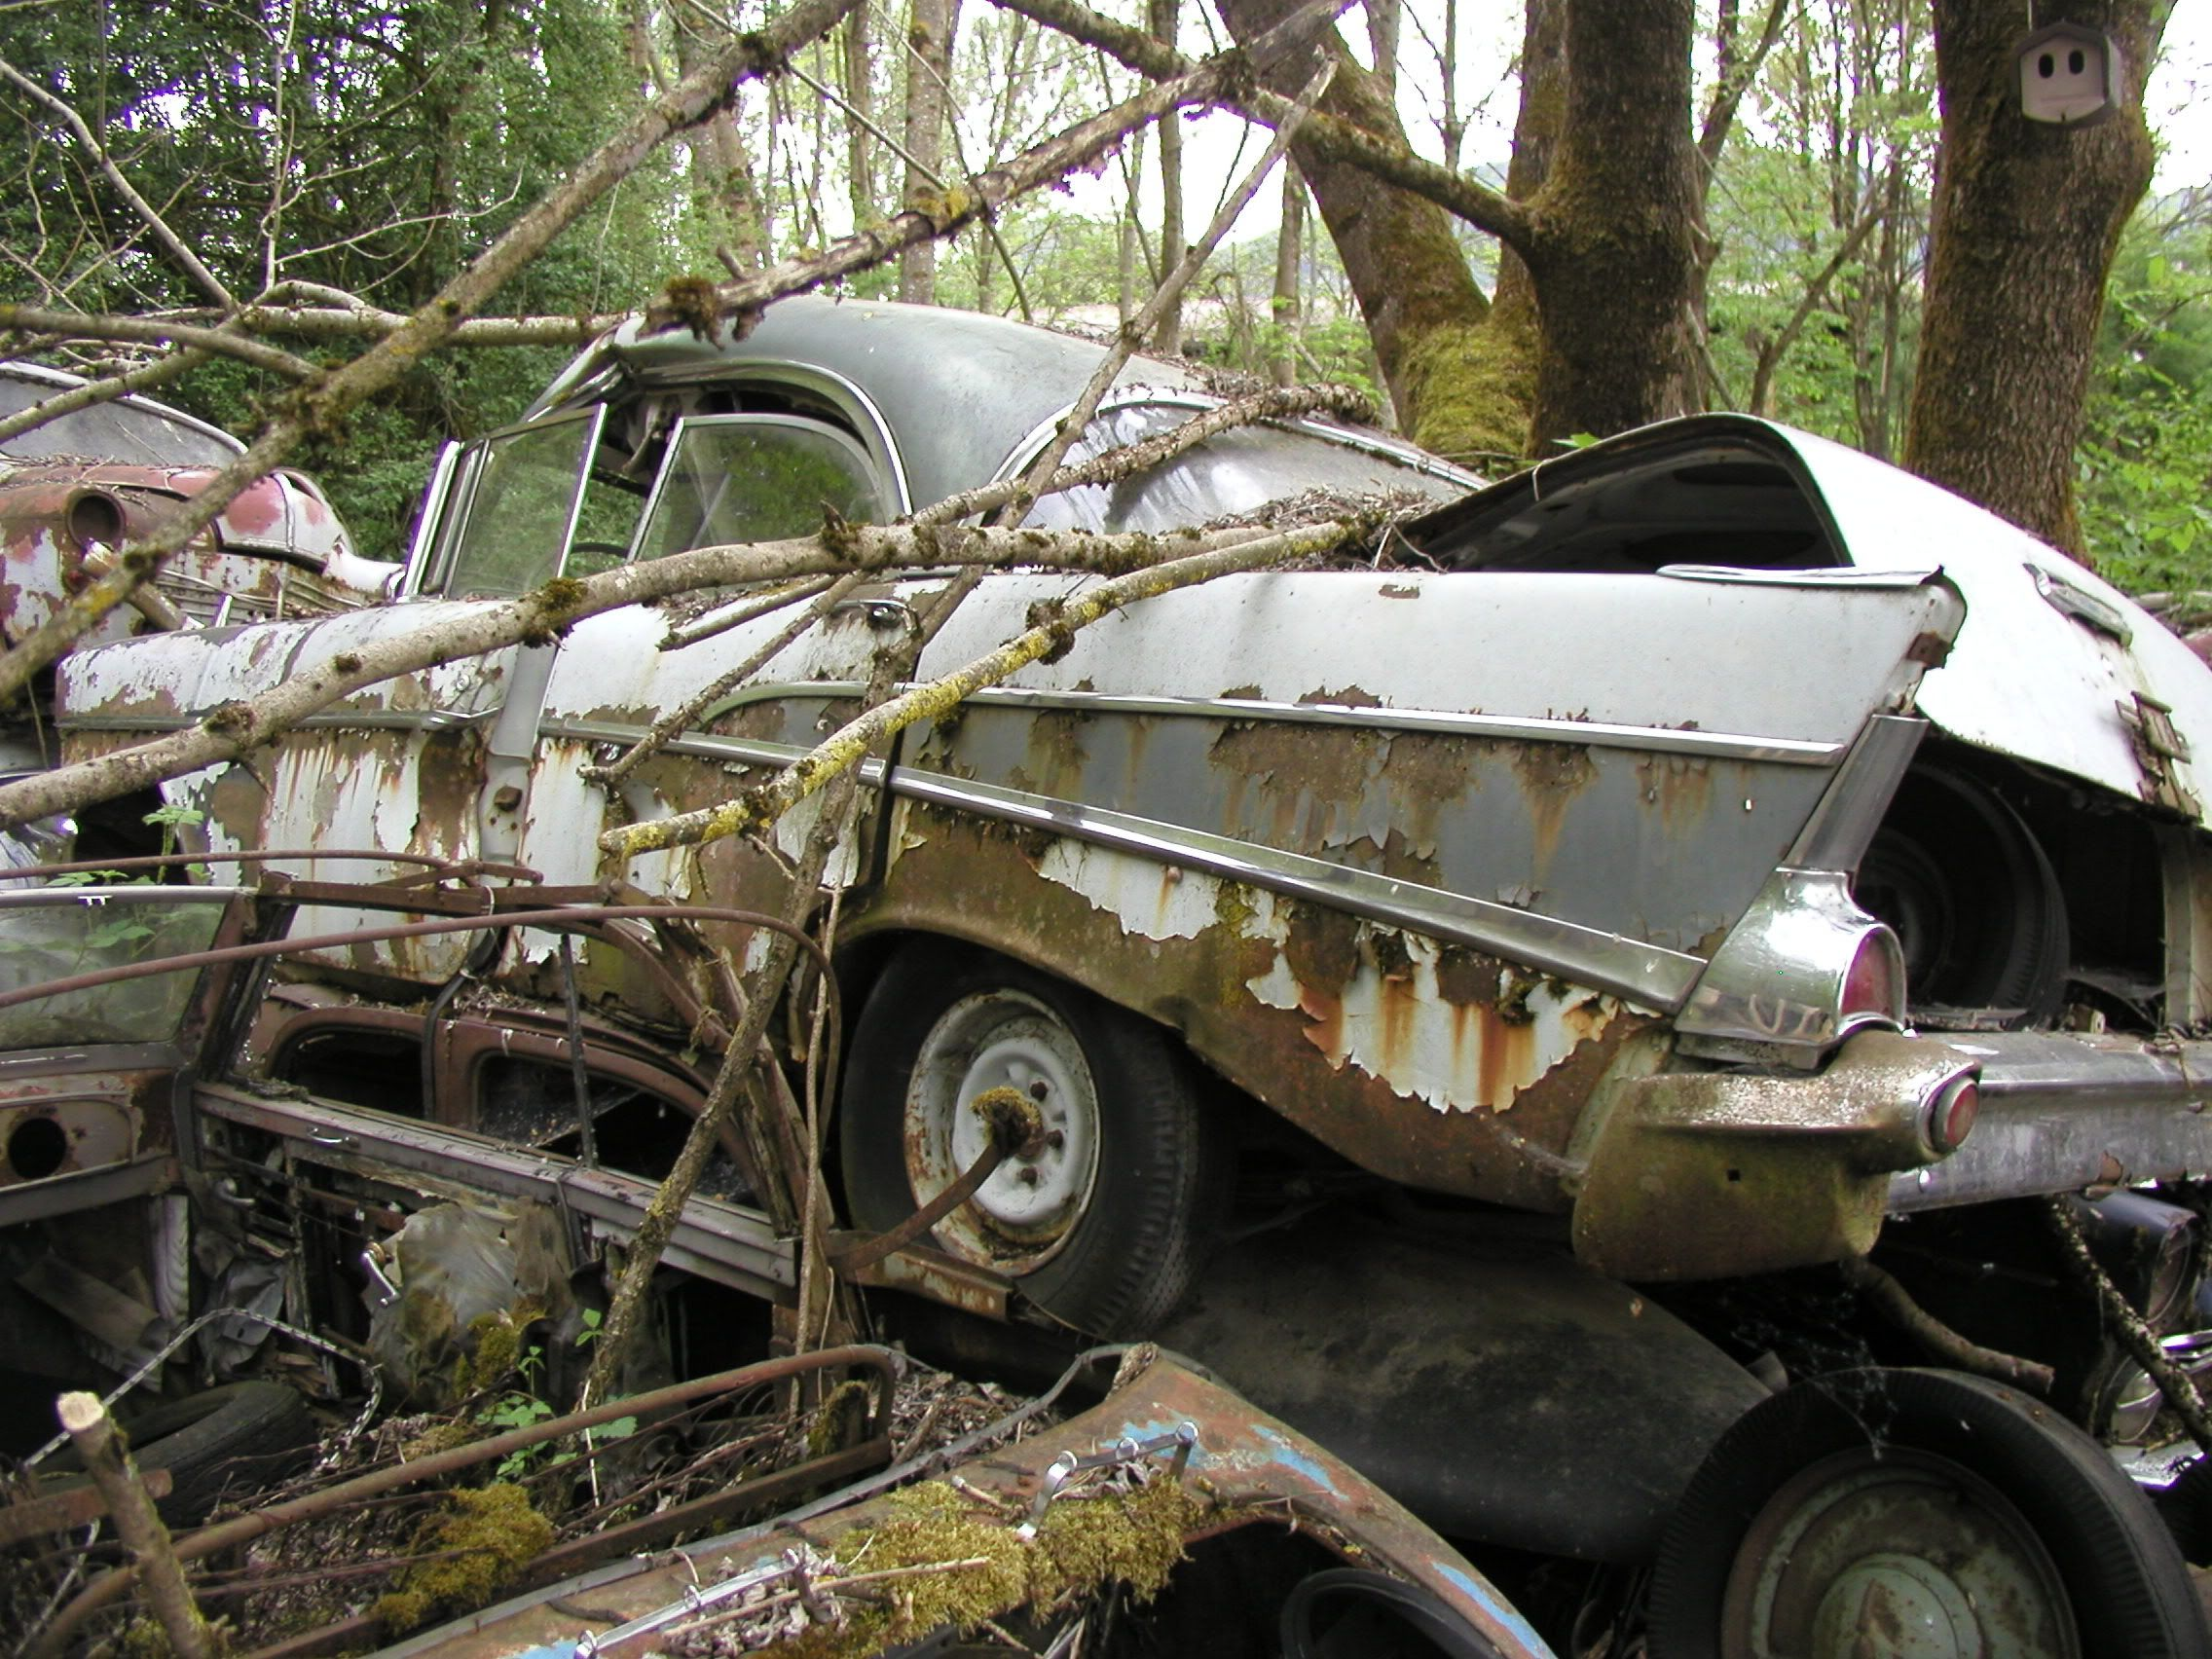 Best Neglected Cars Images On Pinterest Abandoned Cars